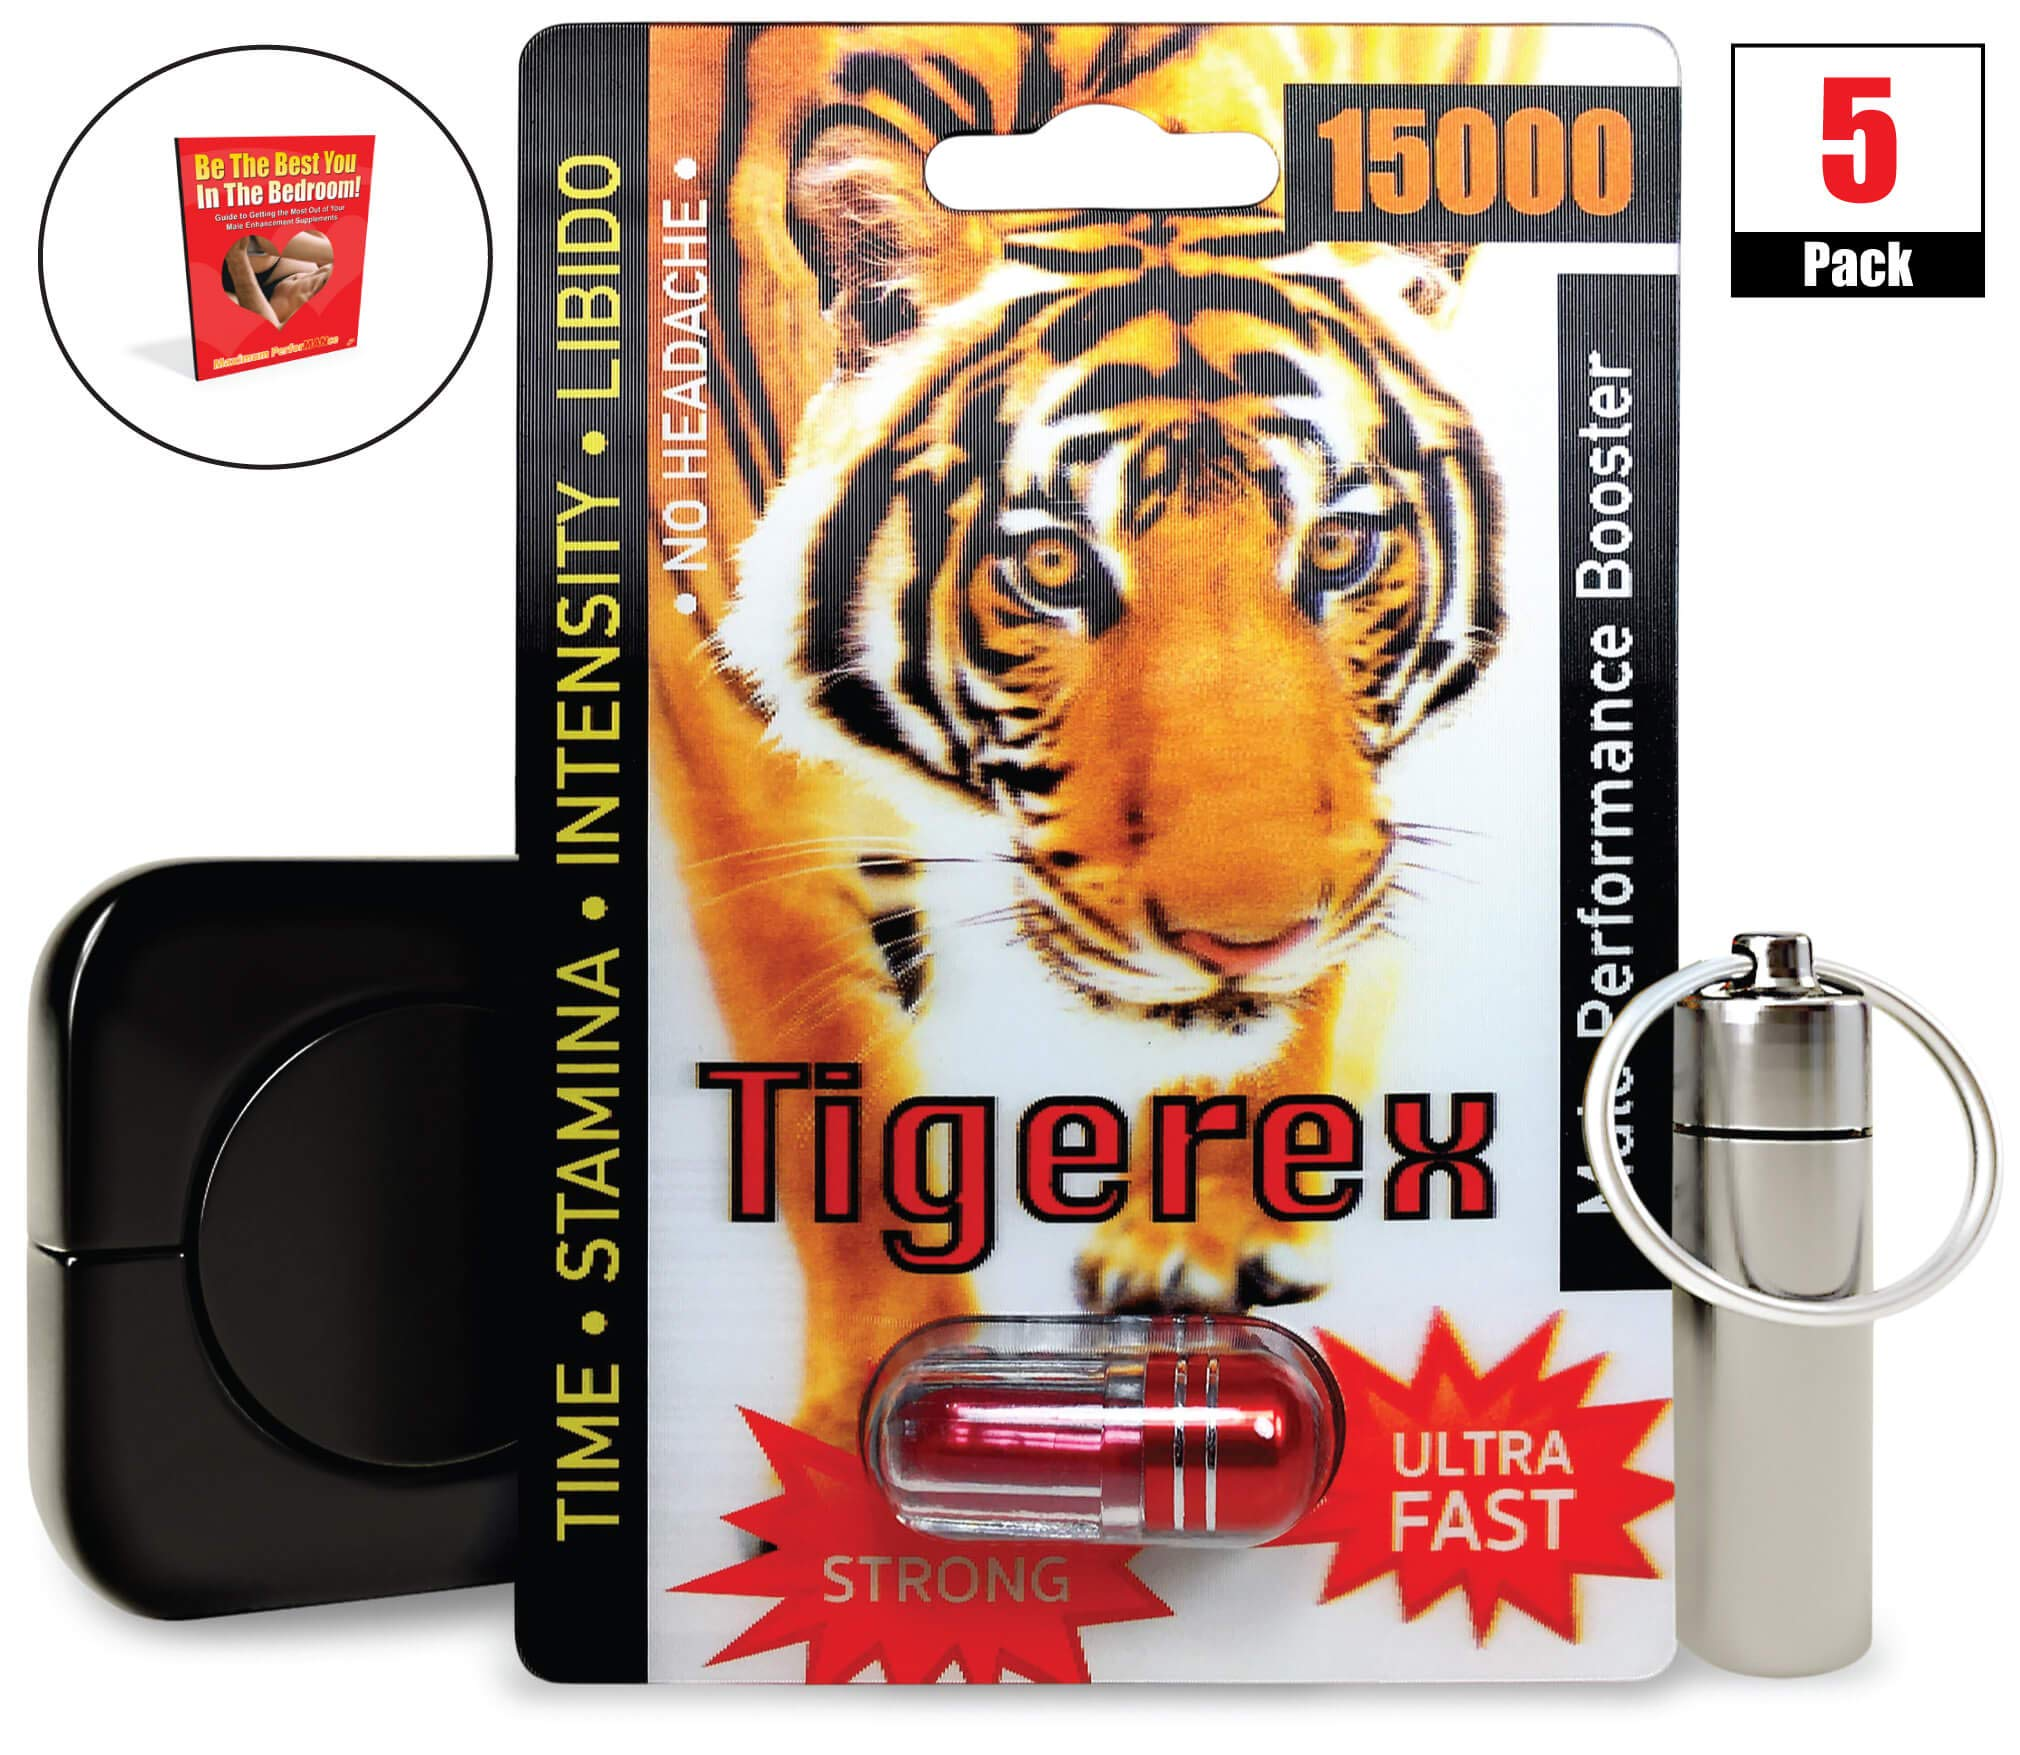 Tigerex 15000 (5) Pack, Natural Male Performance Booster, Increase Energy & Stamina Bundle w/Keychain, Case, Booklet (8 Items)